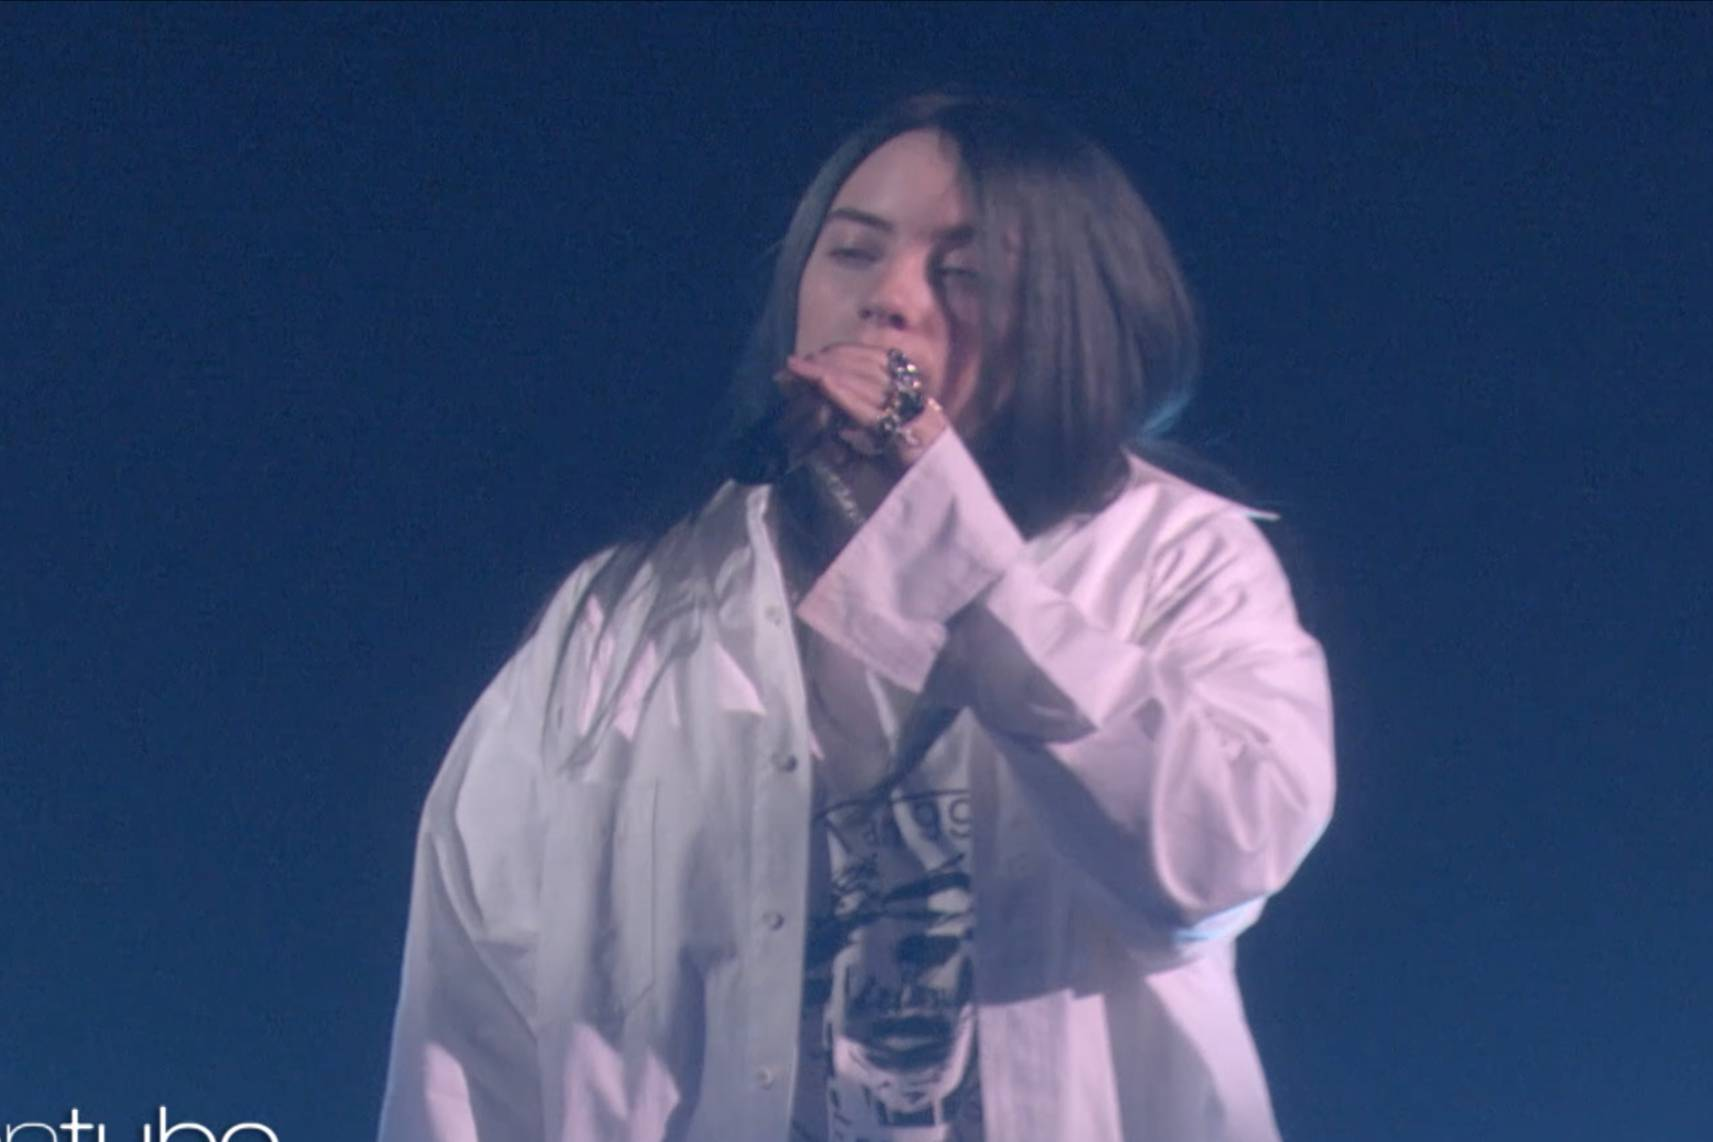 Watch Billie Eilish perform 'when the party's over' live on Ellen